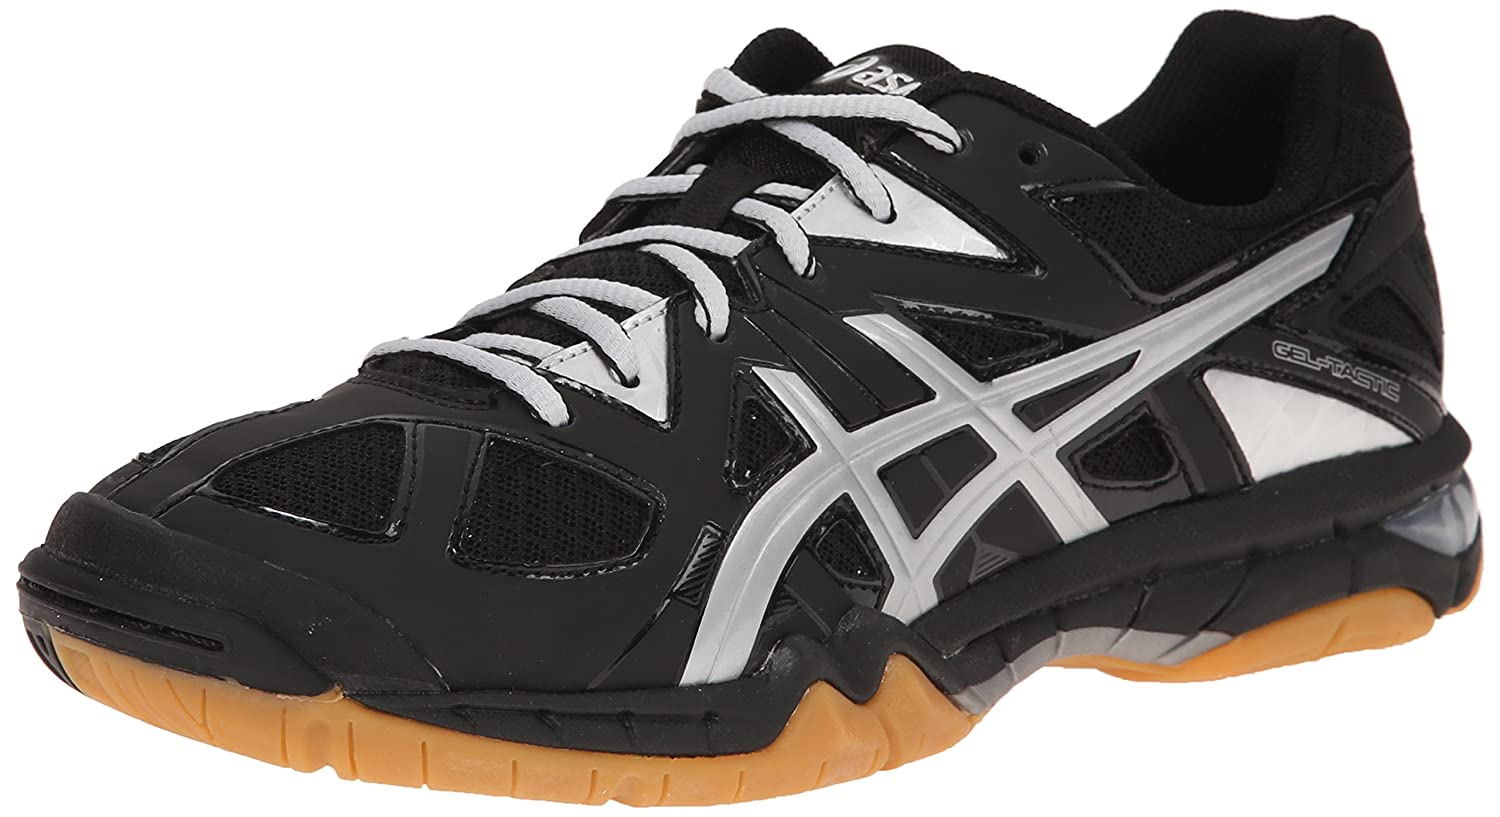 ASICS Women's Gel Tactic Volleyball Shoe B00Q2JNFKK 6 B(M) US|Black/Silver